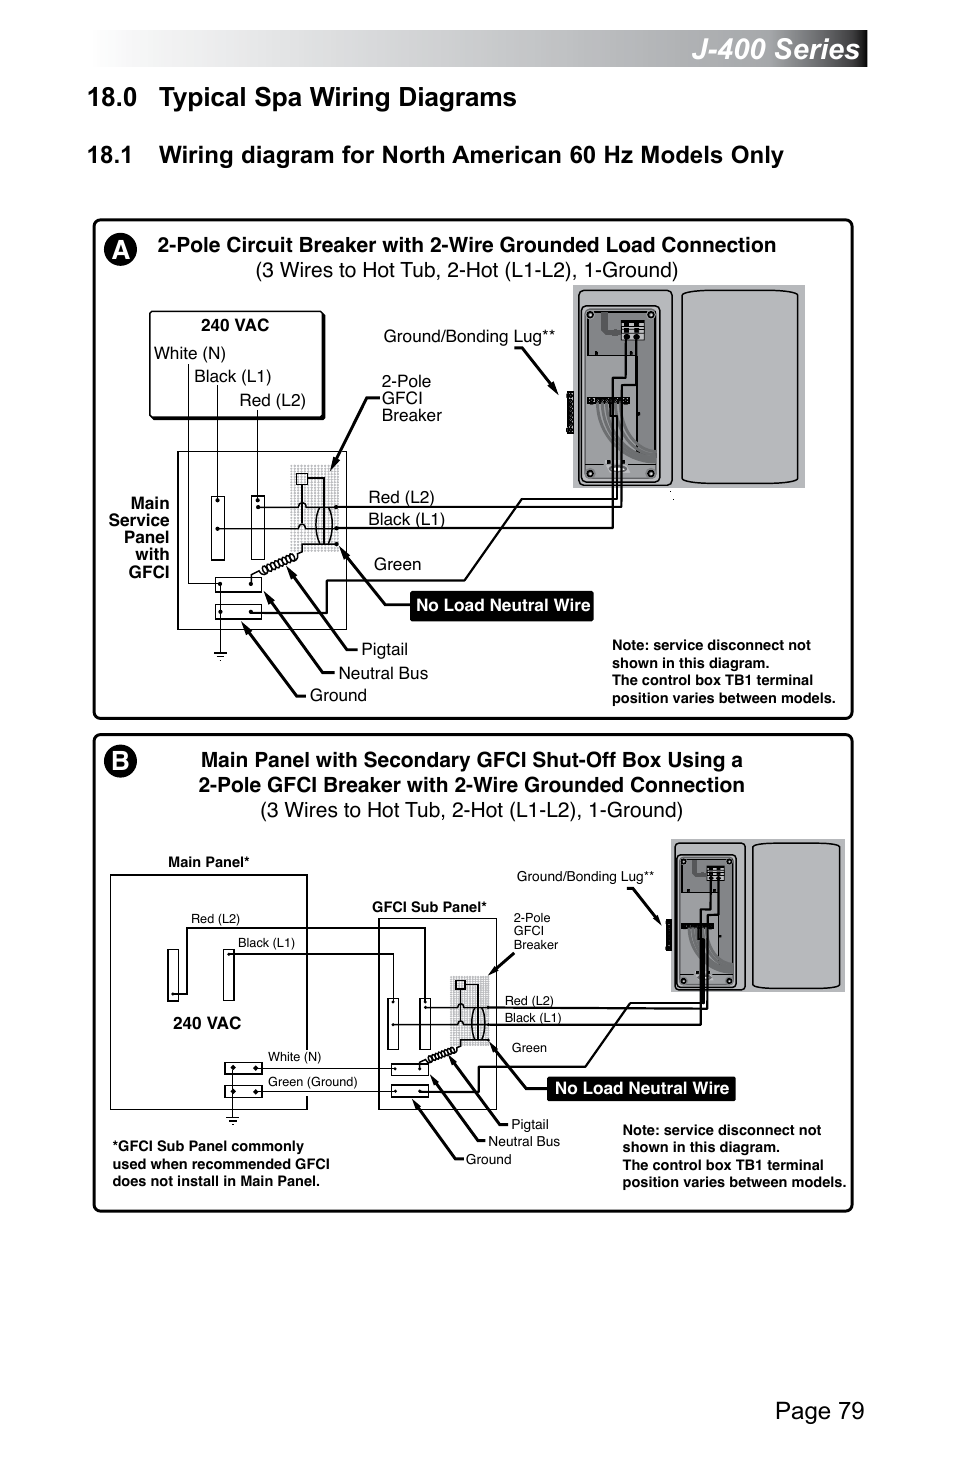 Hot Tub Wiring Diagram 22 Images Diagrams 220 For Jacuzzi J 470 Page85 0 Typical Spa 400 Series Page 79